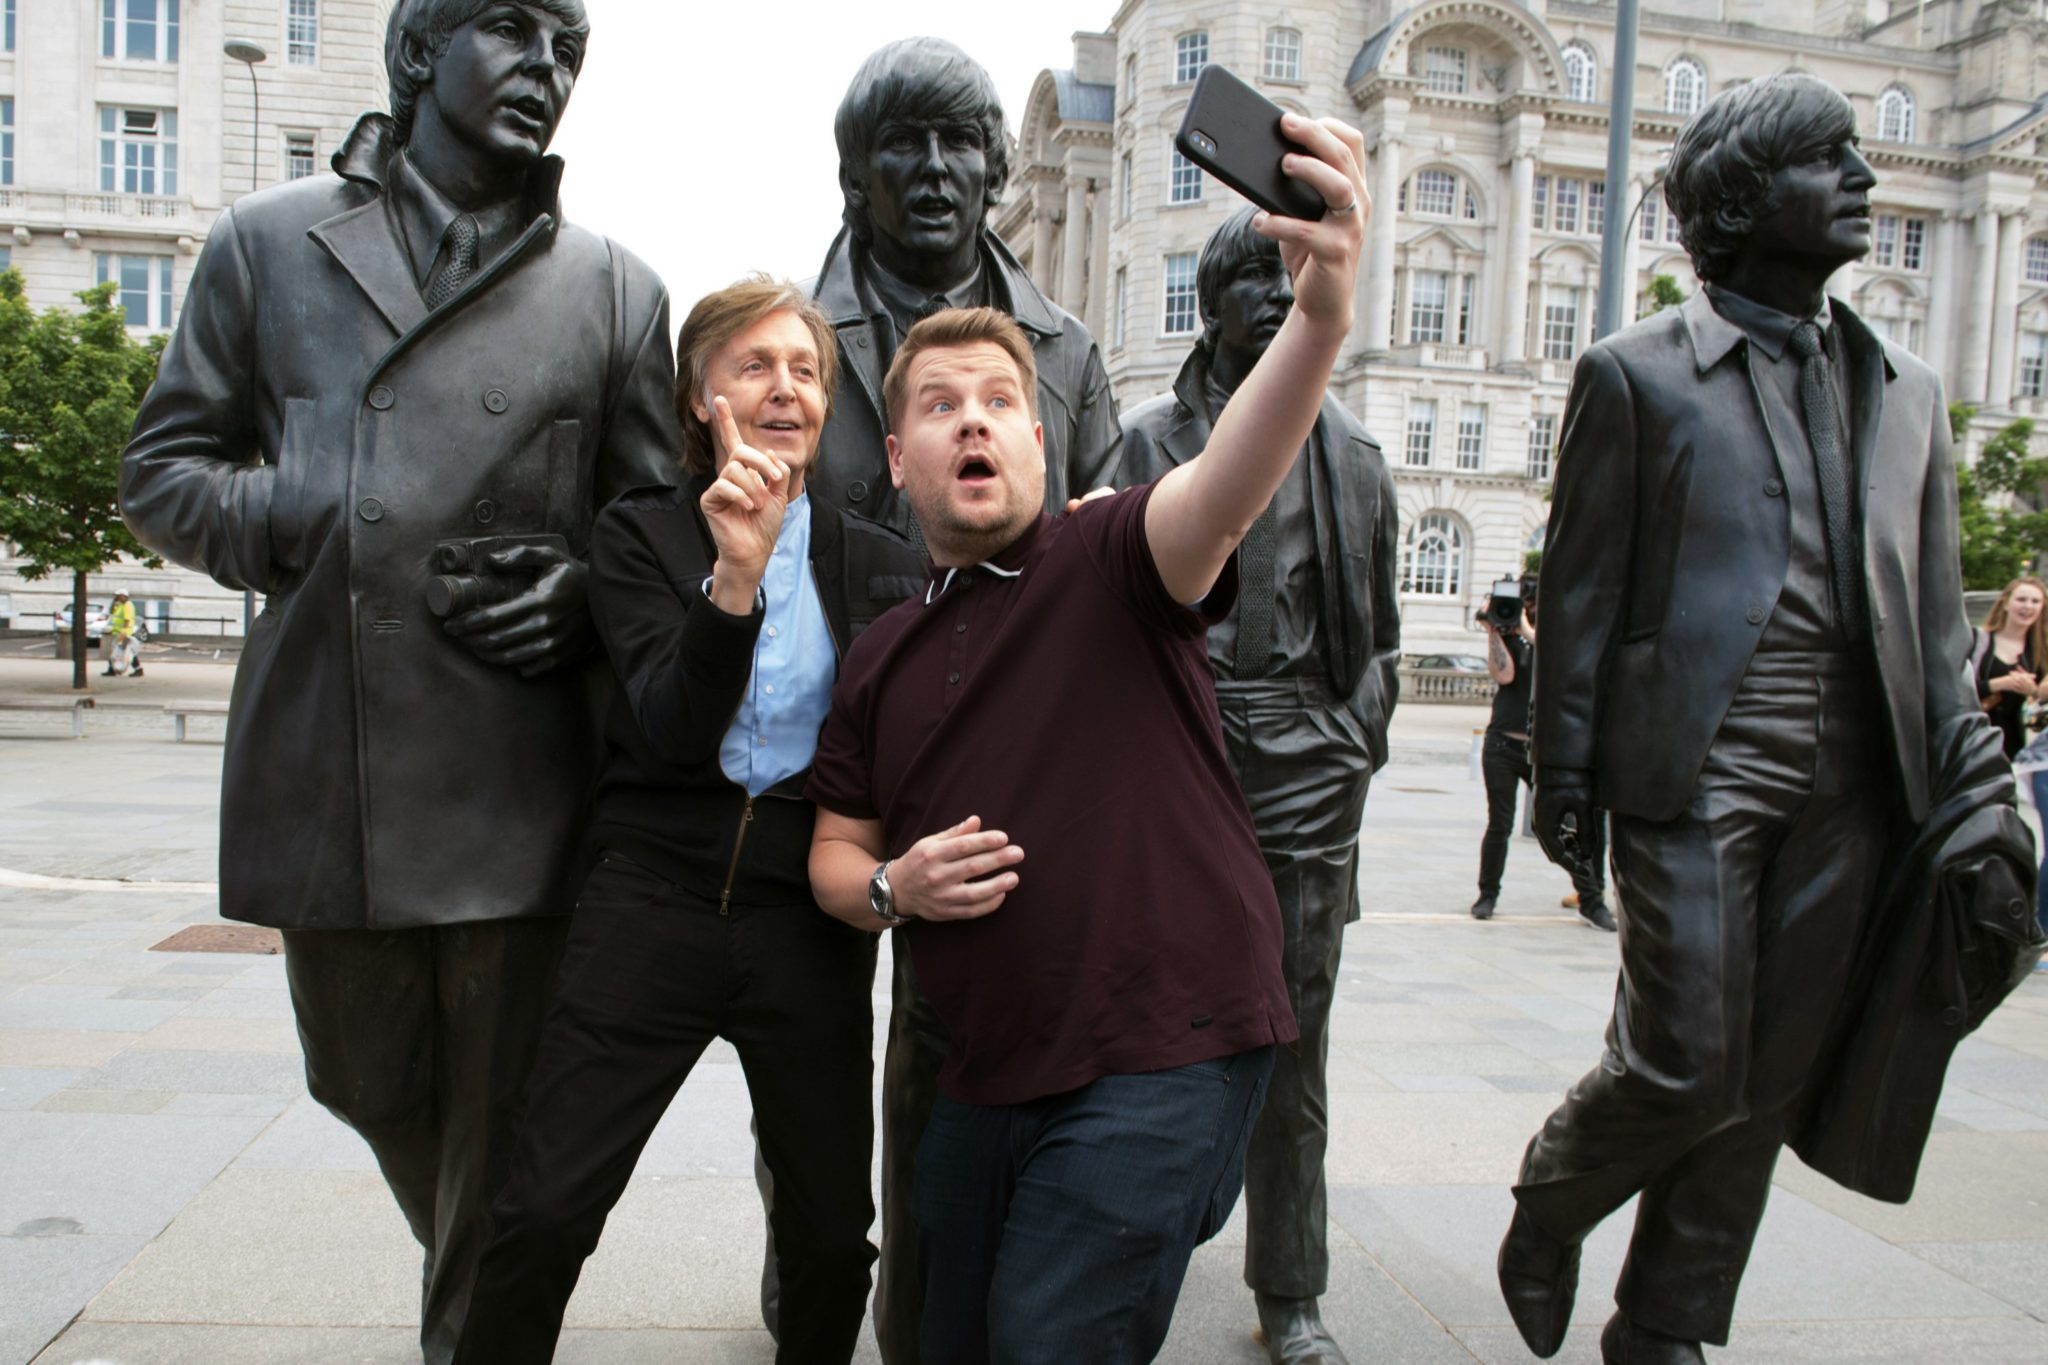 Paul McCartney and James Corden